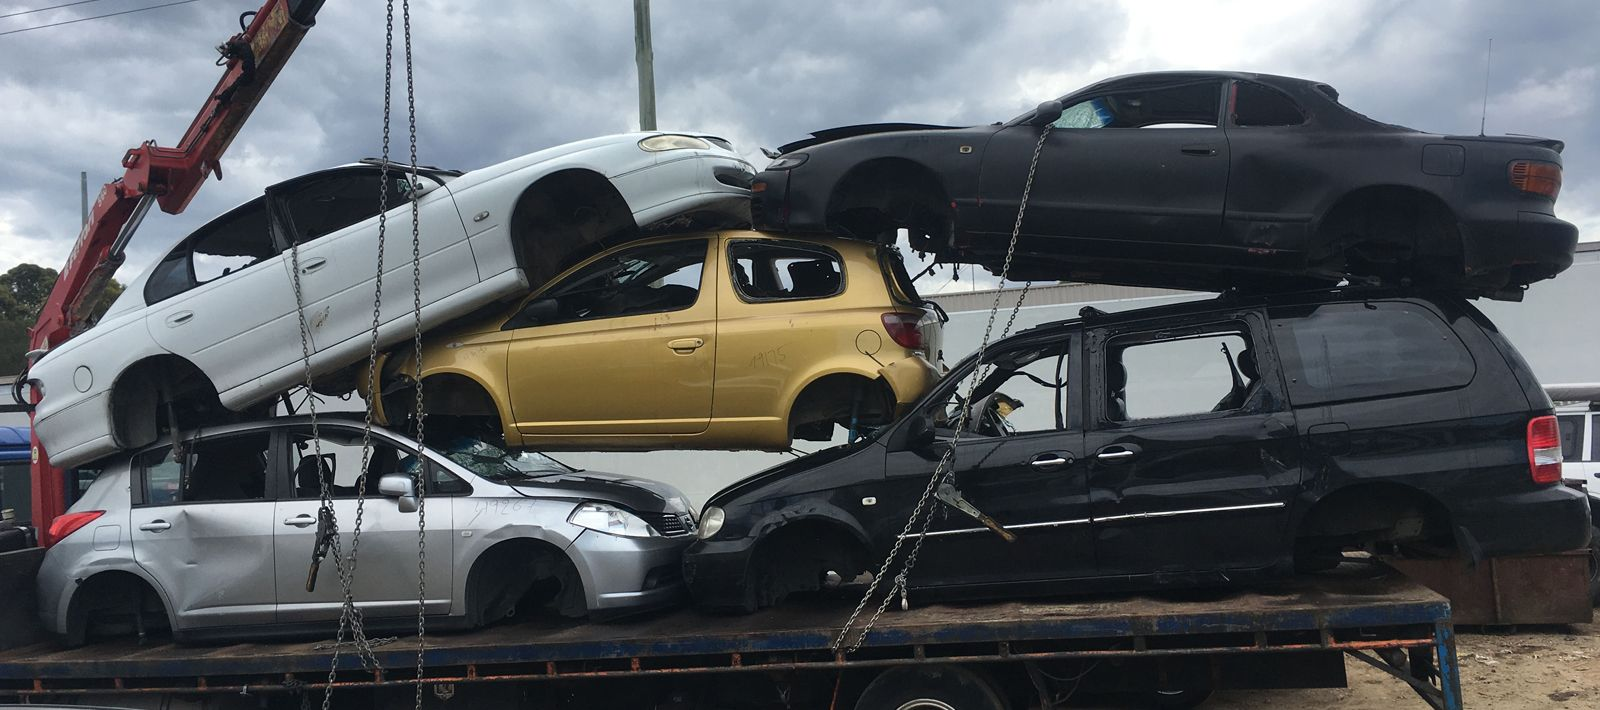 We Scrap Car Is Now Offering A Reliable Scrap Car Service In